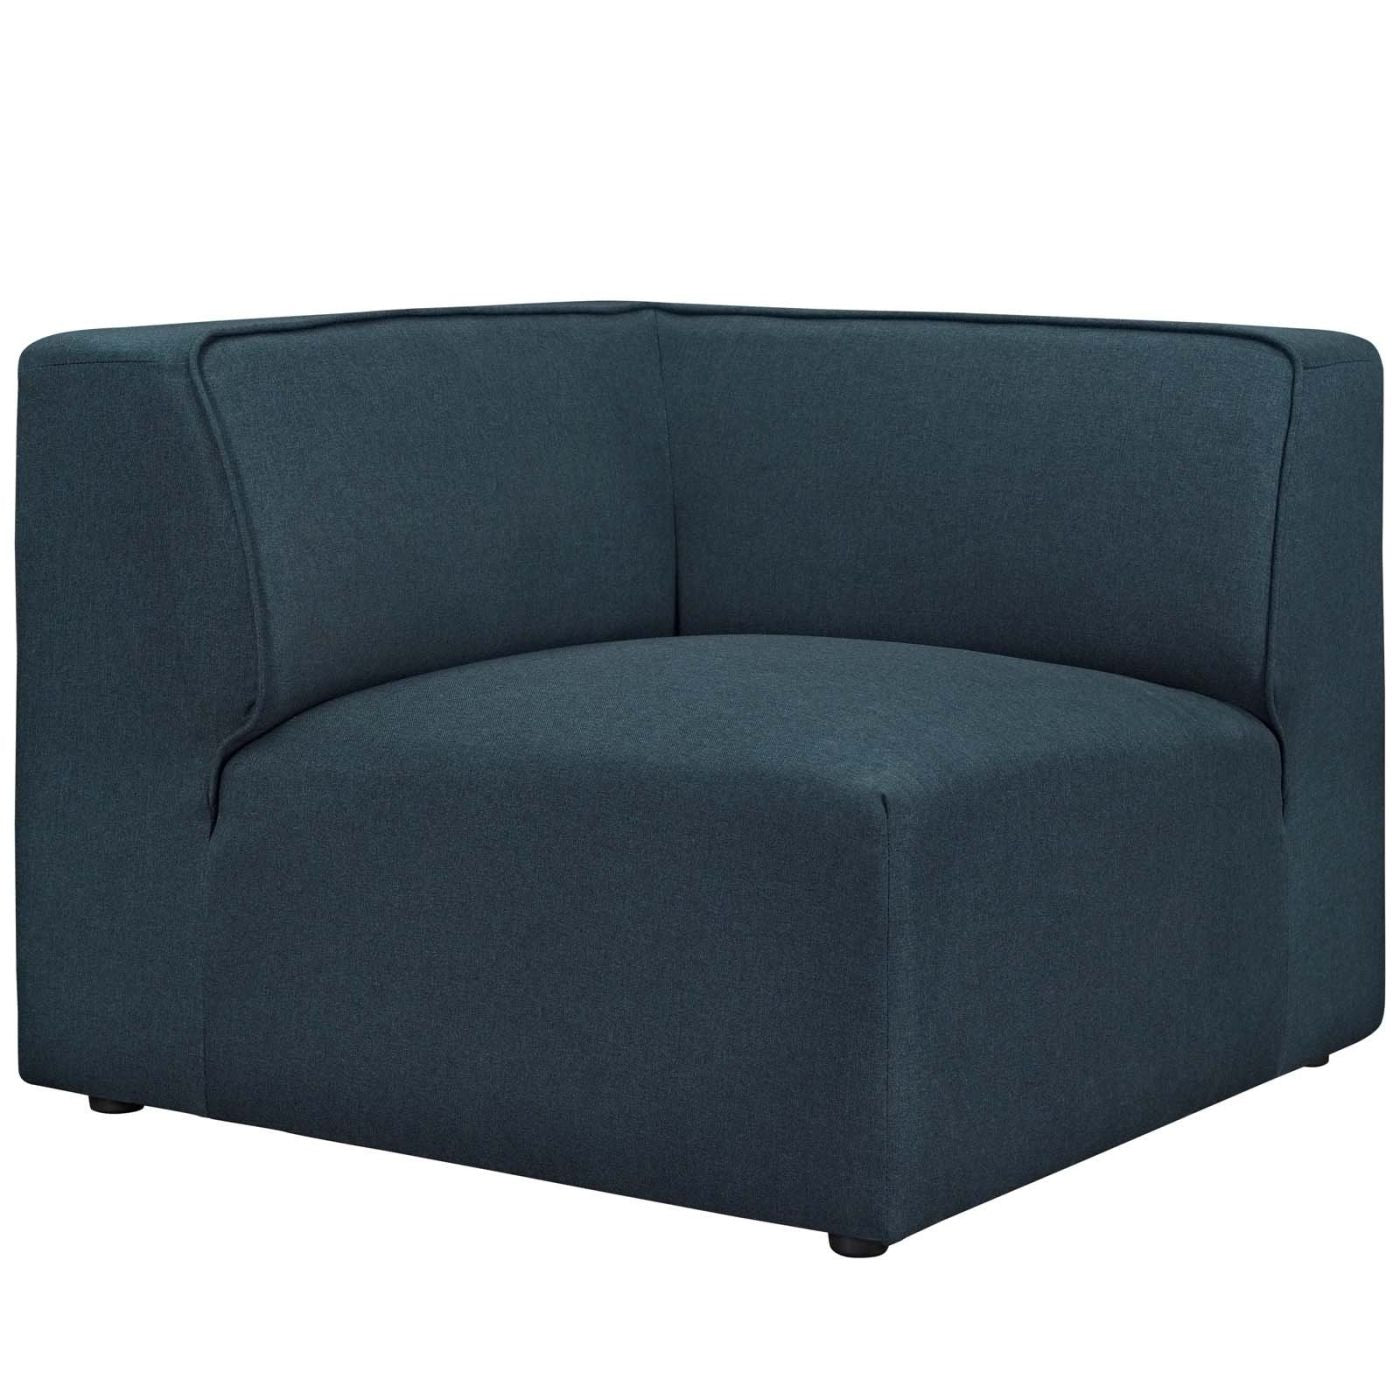 Modway modular sofas on sale. EEI-2728-BLU Mingle Corner Sofa only Only  $473.05 at Contemporary Furniture Warehouse